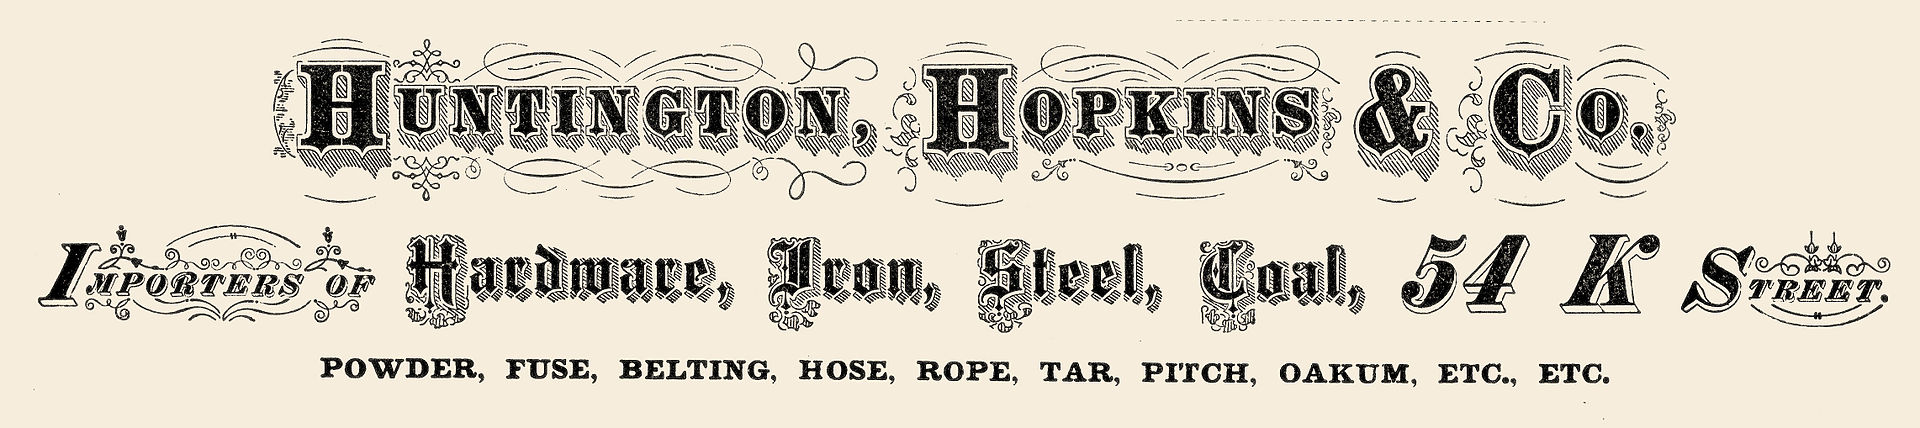 An 1874 advertisement for goods offered by the Huntington & Hopkins company.